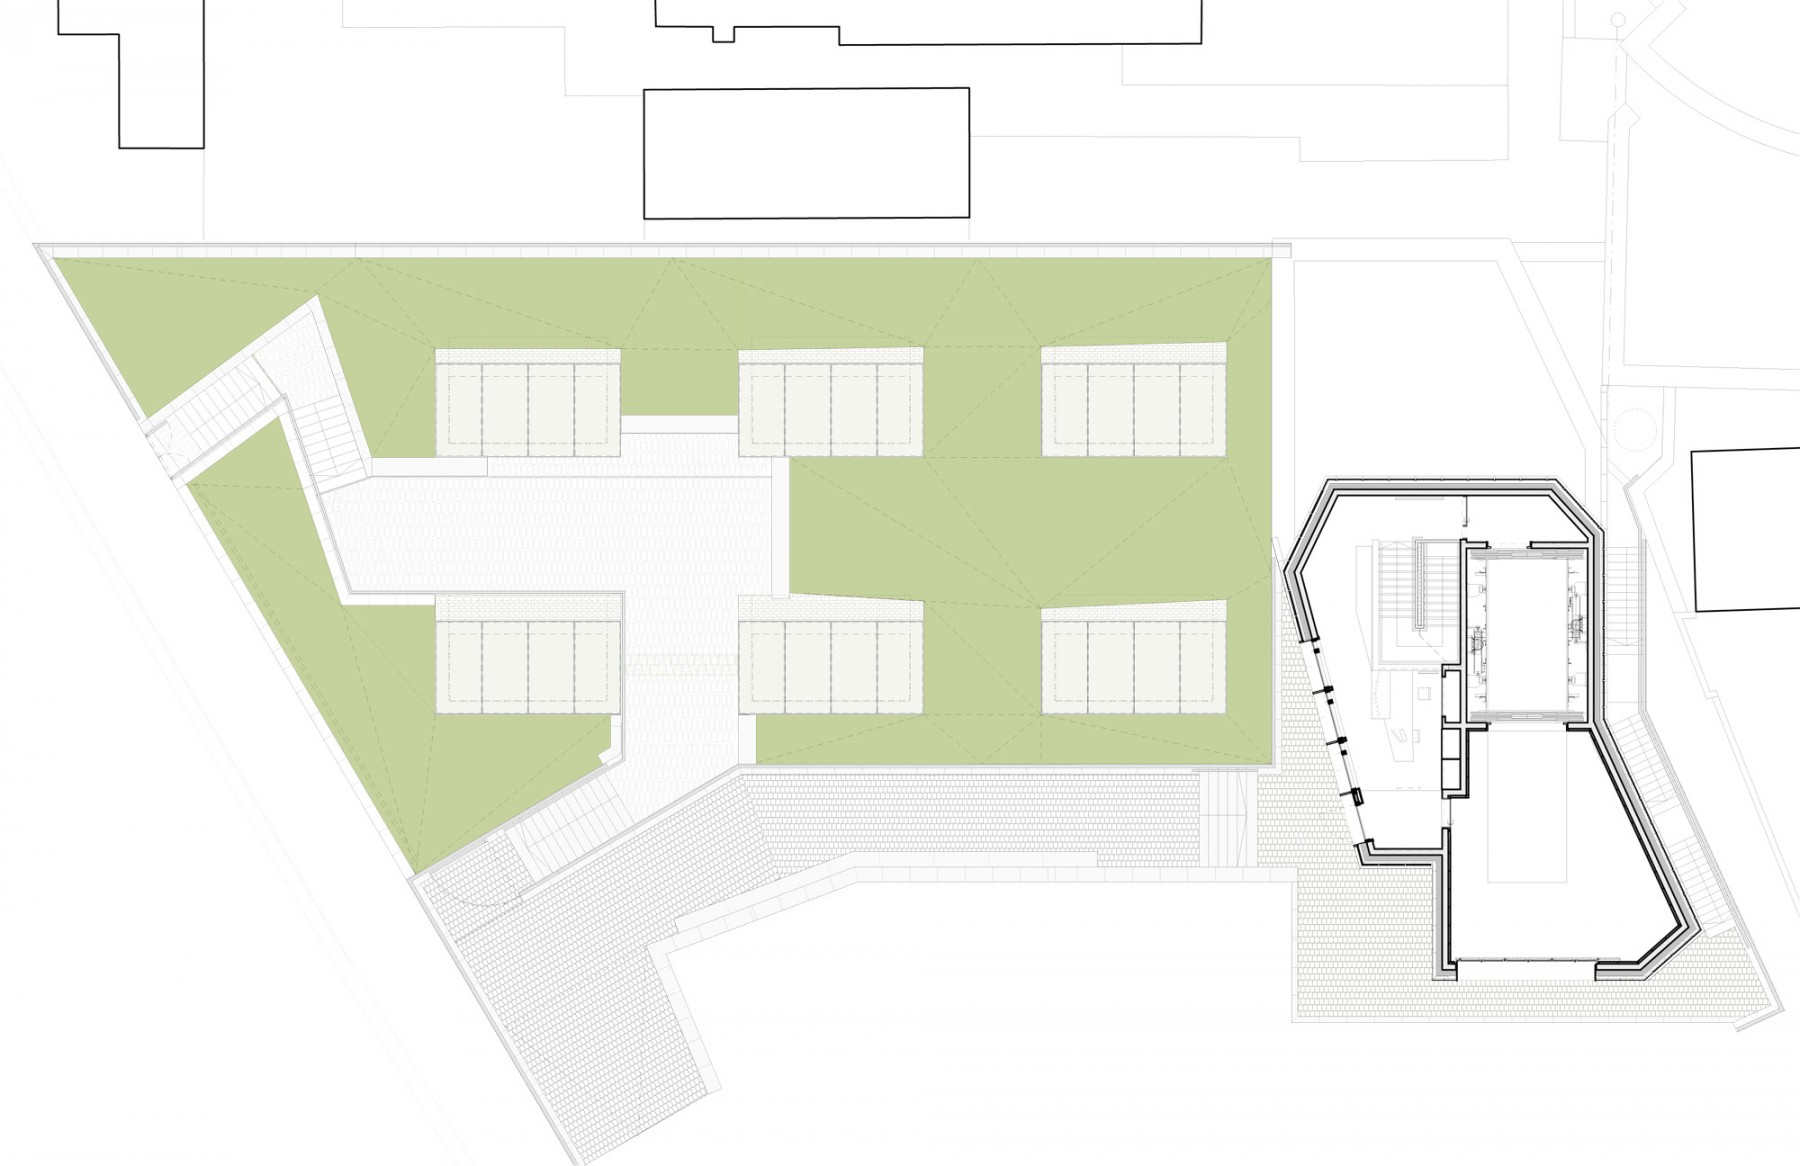 Jamie-Fobert-Architects-extension-to-Tate-St-Ives-rooftop-Landscape-plan